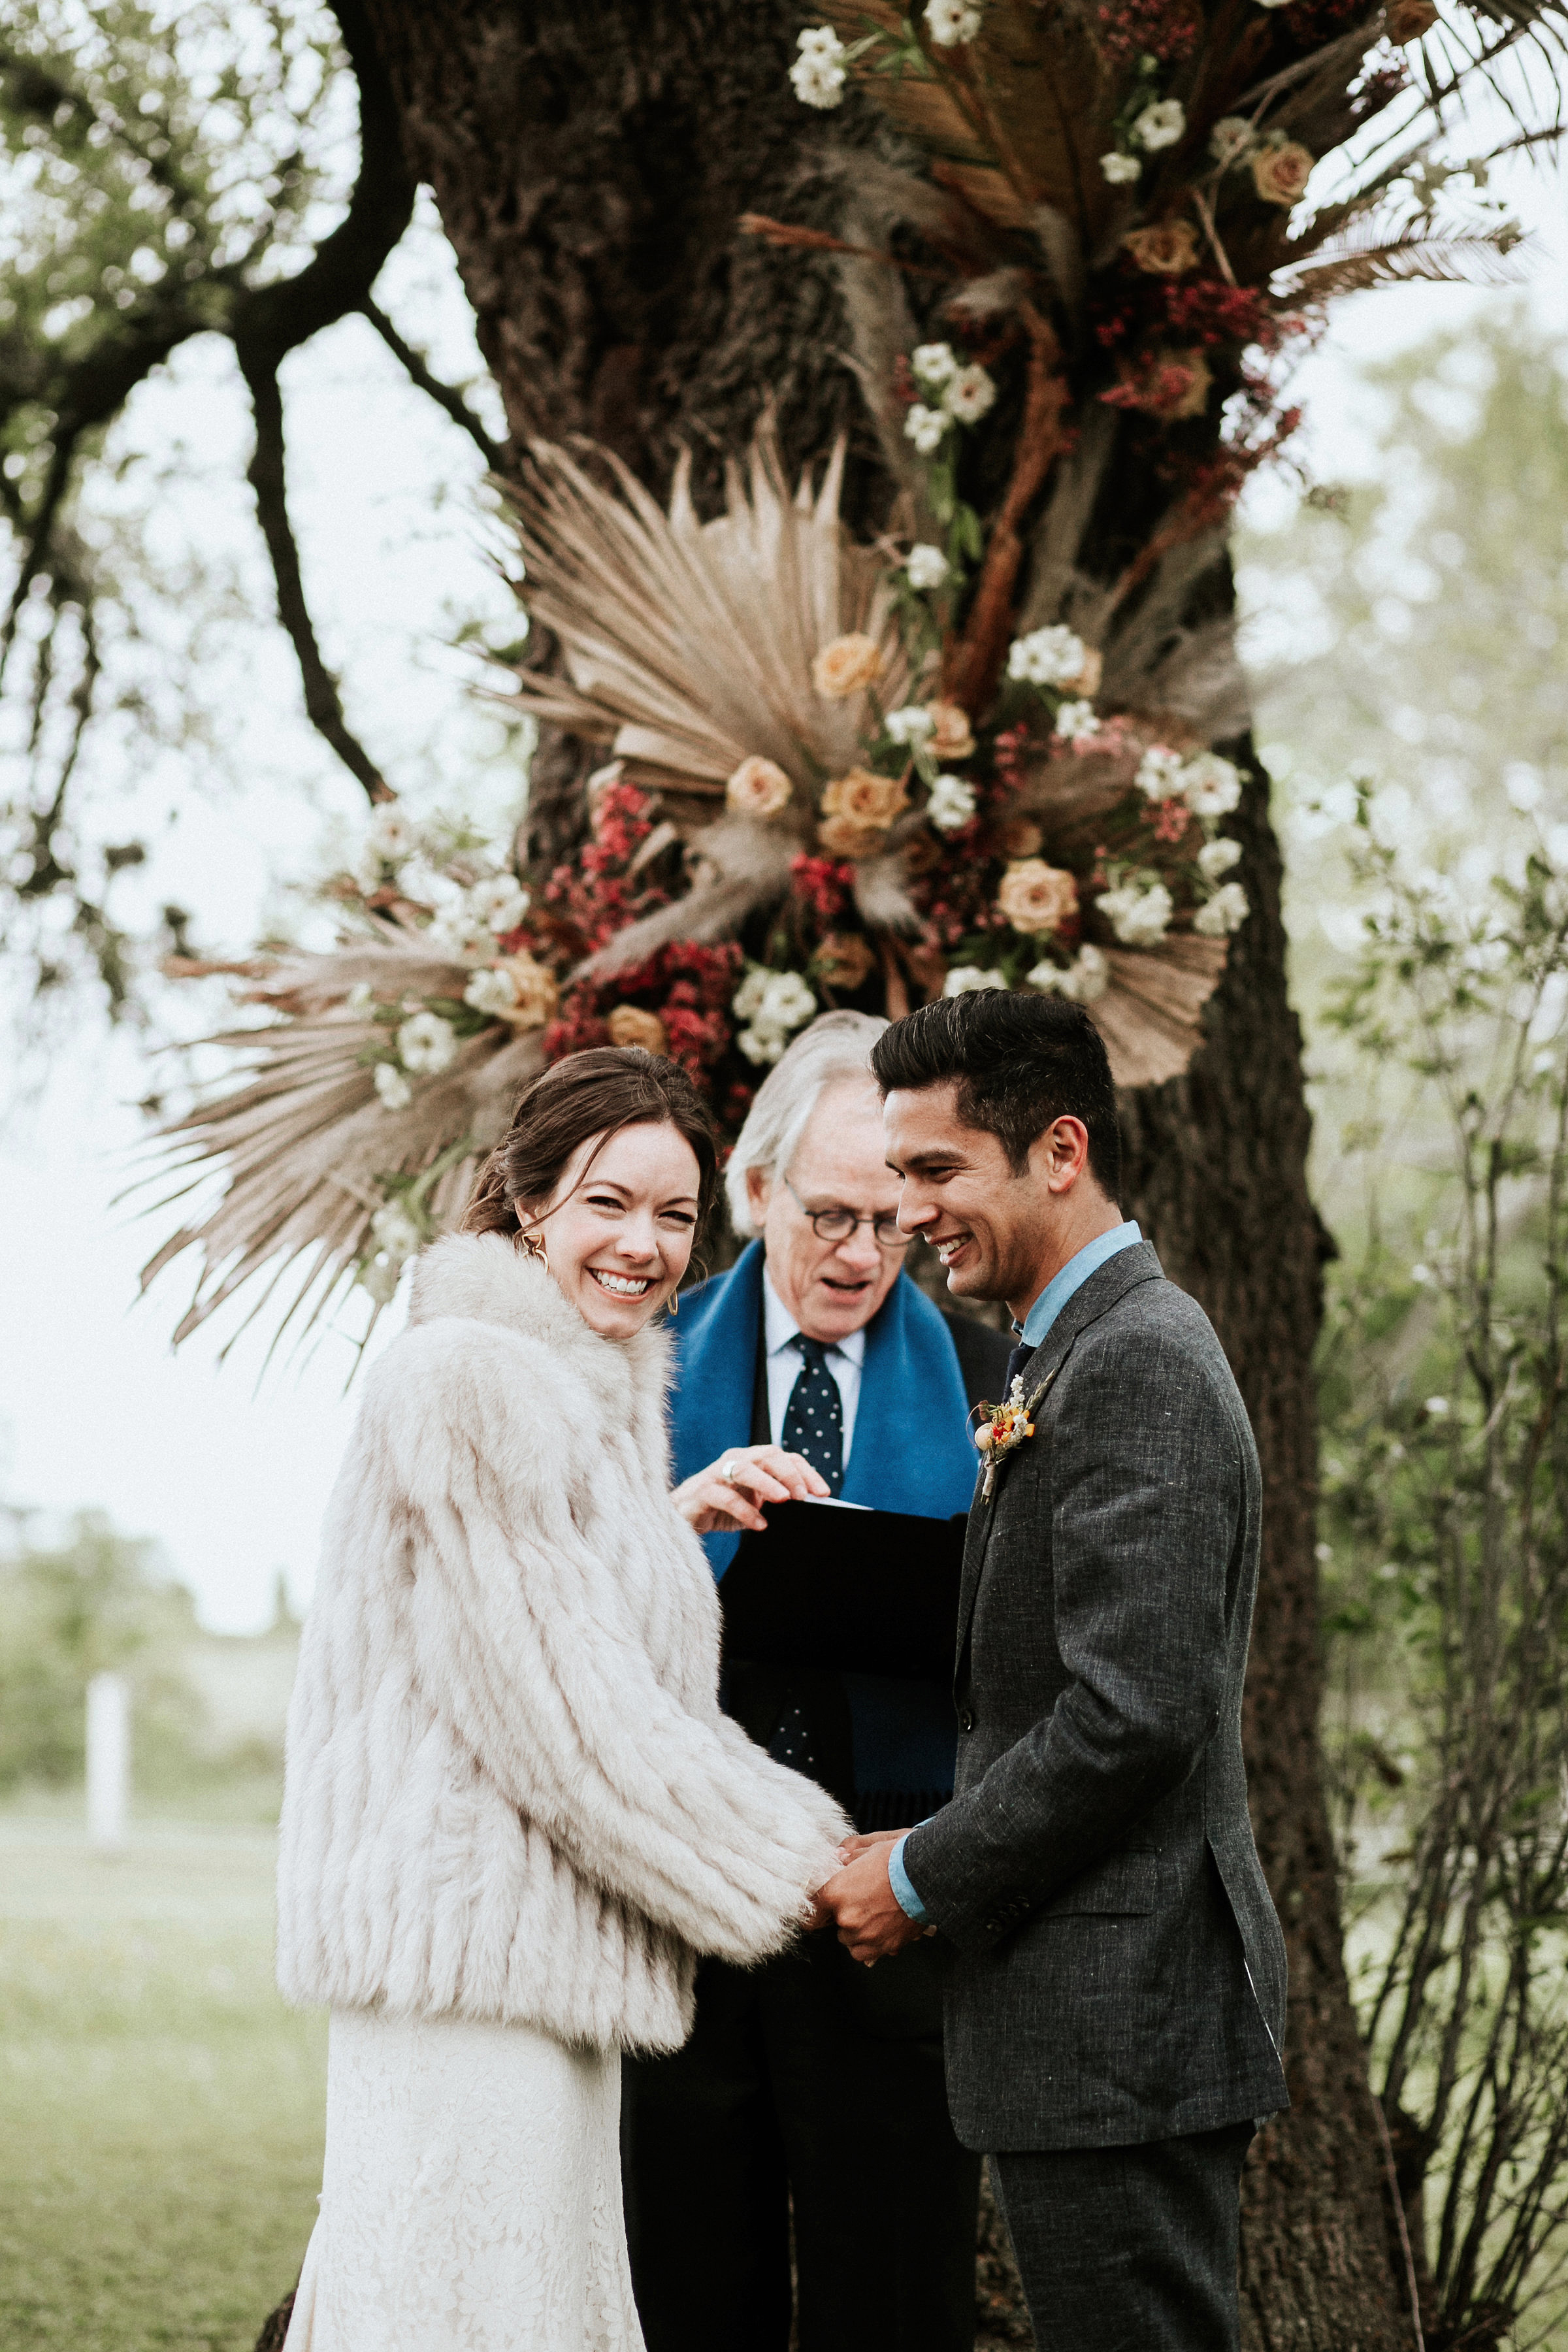 shannon jason wedding bride groom couple ceremony with officiant